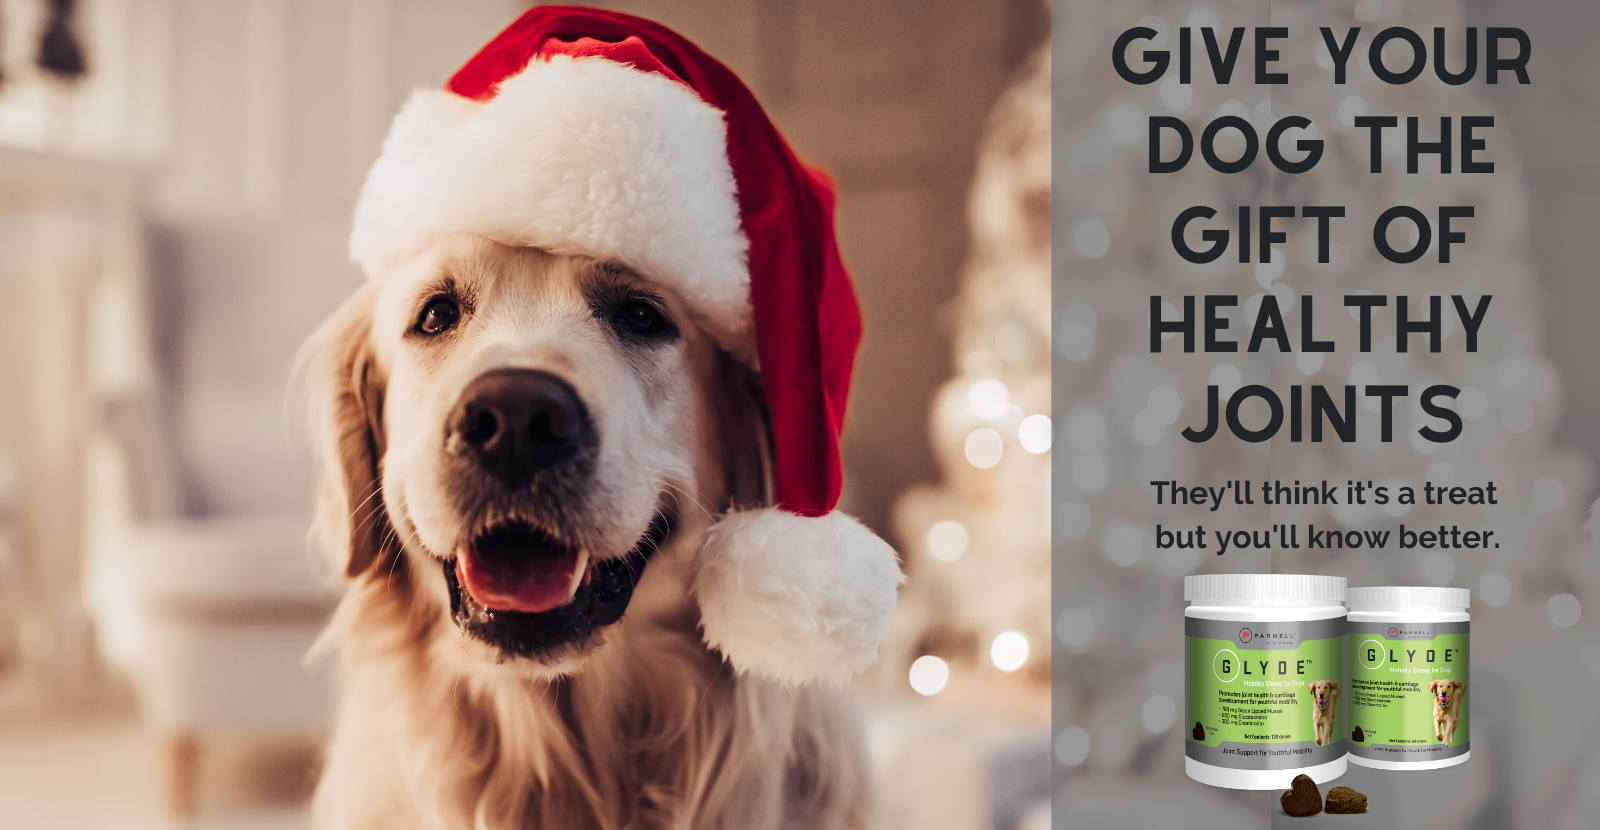 Give the gift of healthy joints US-1